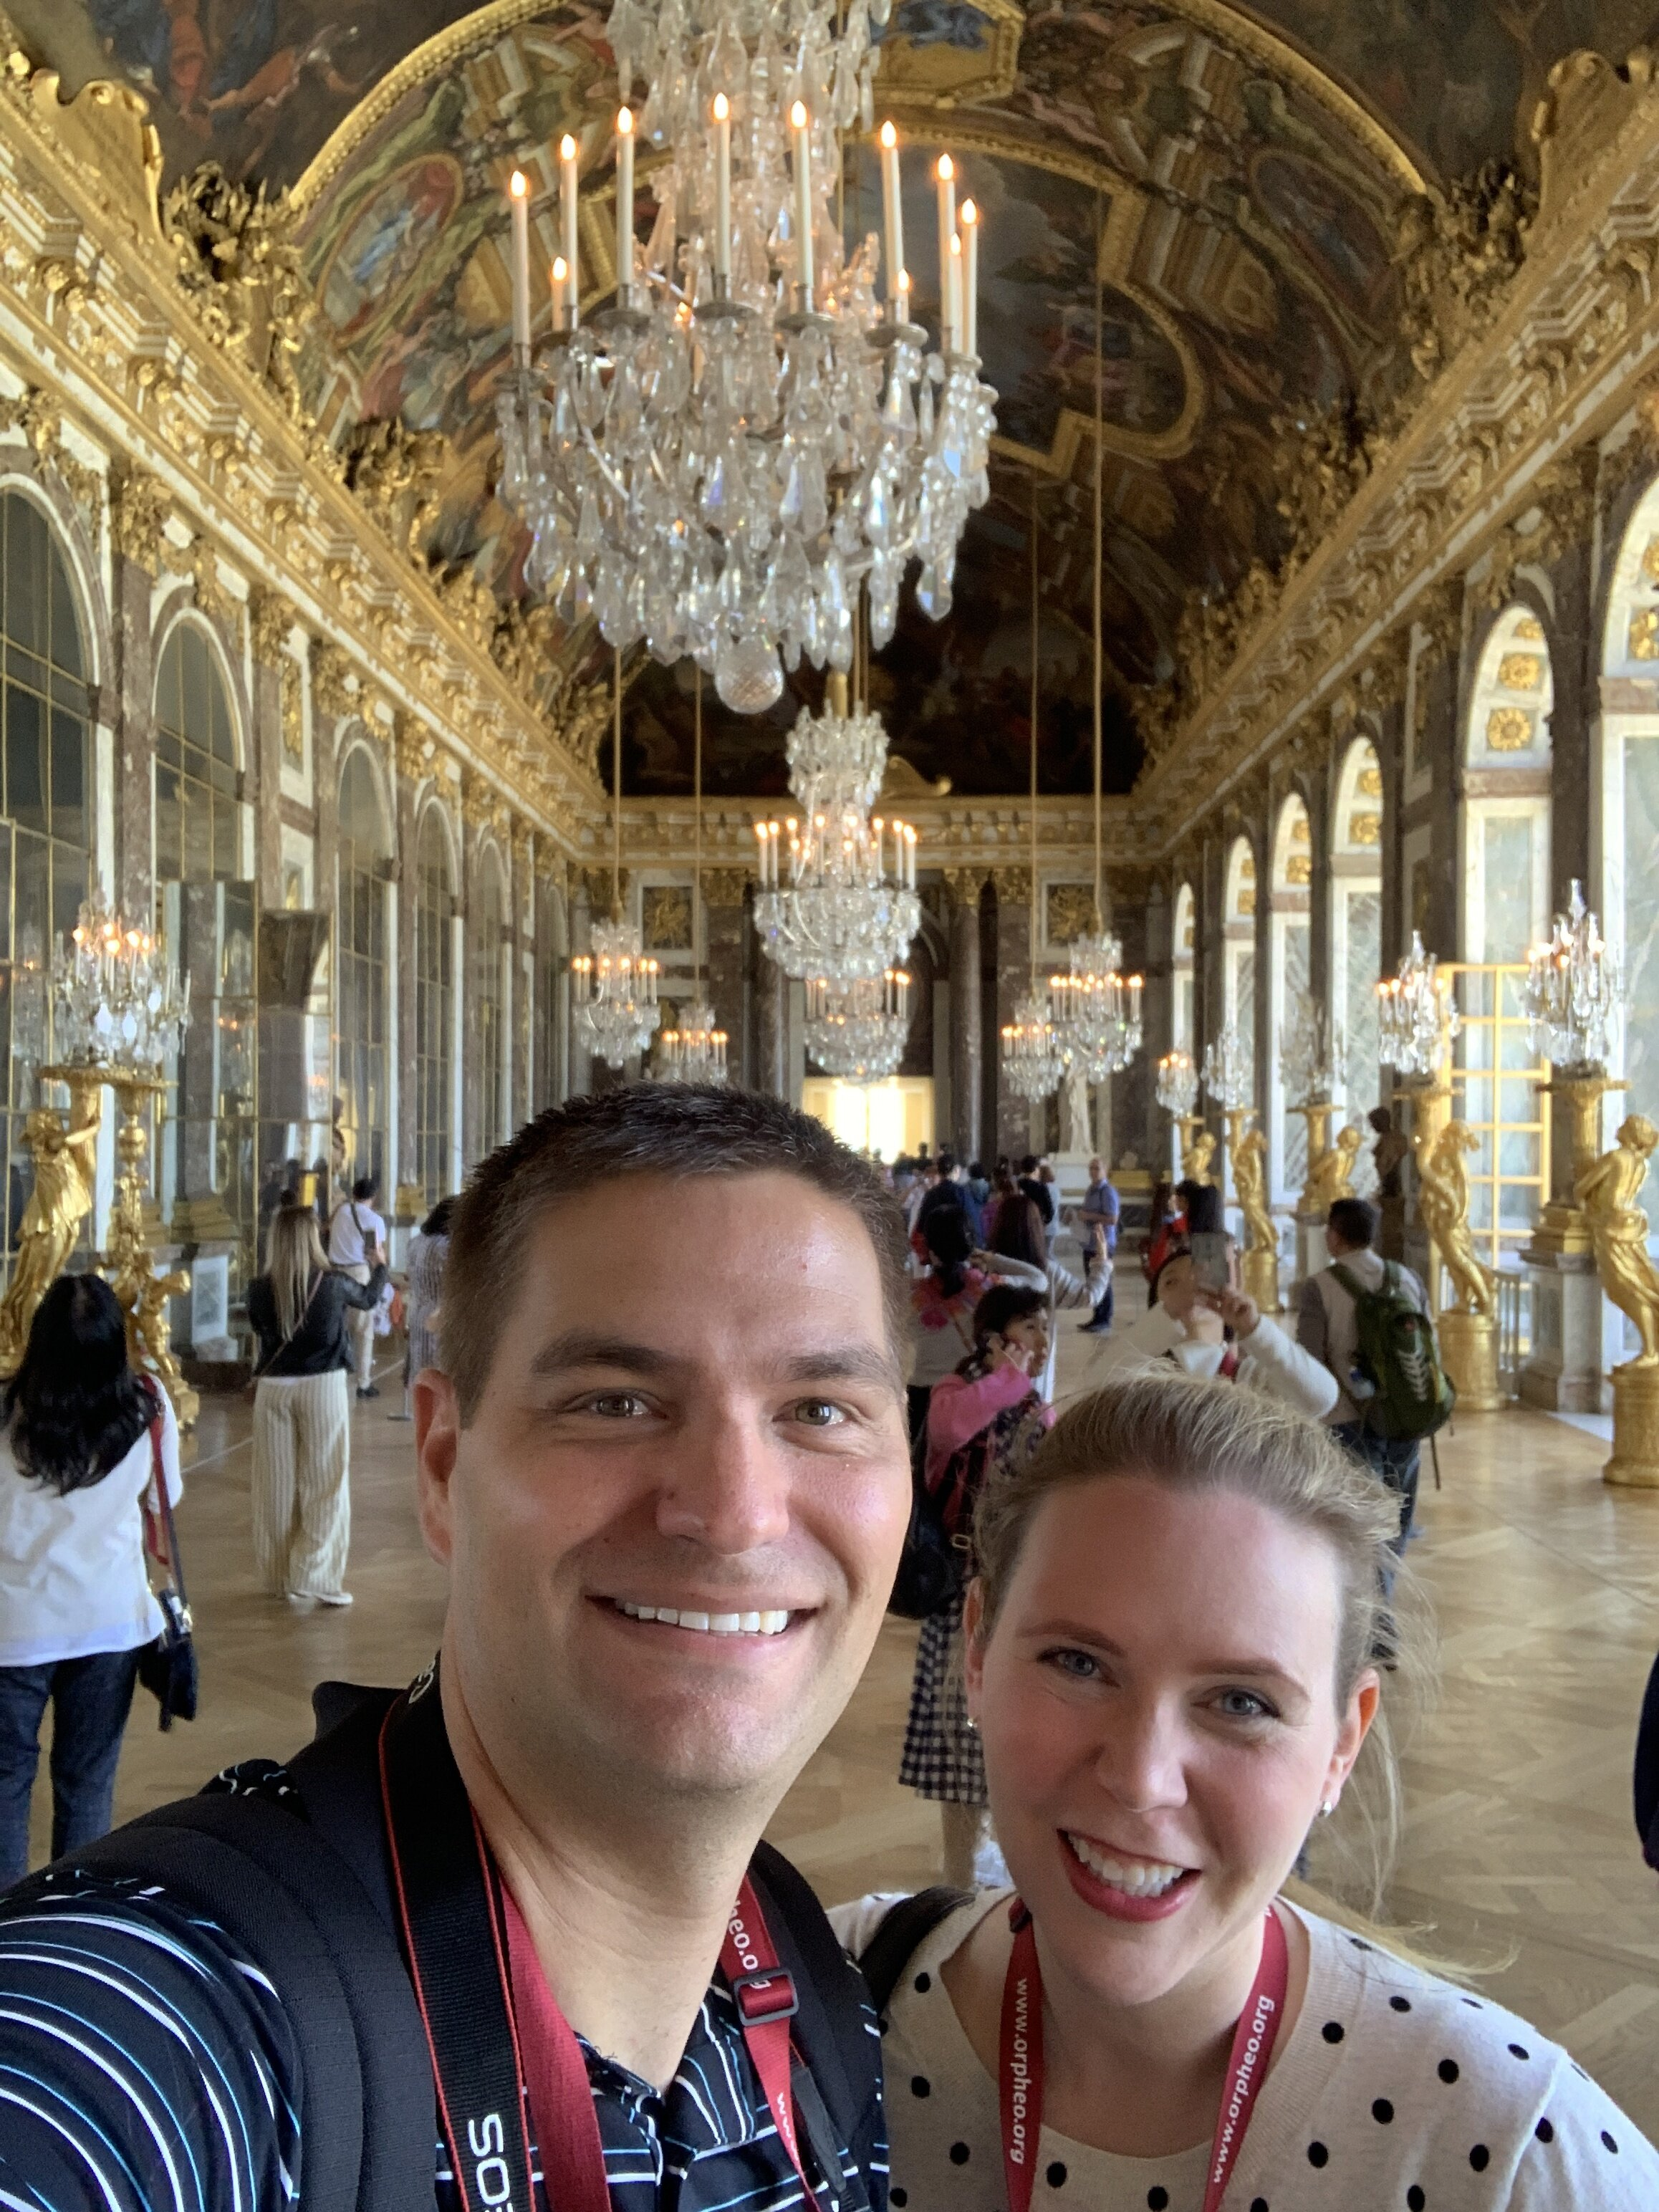 Even a visit to Versailles was included.